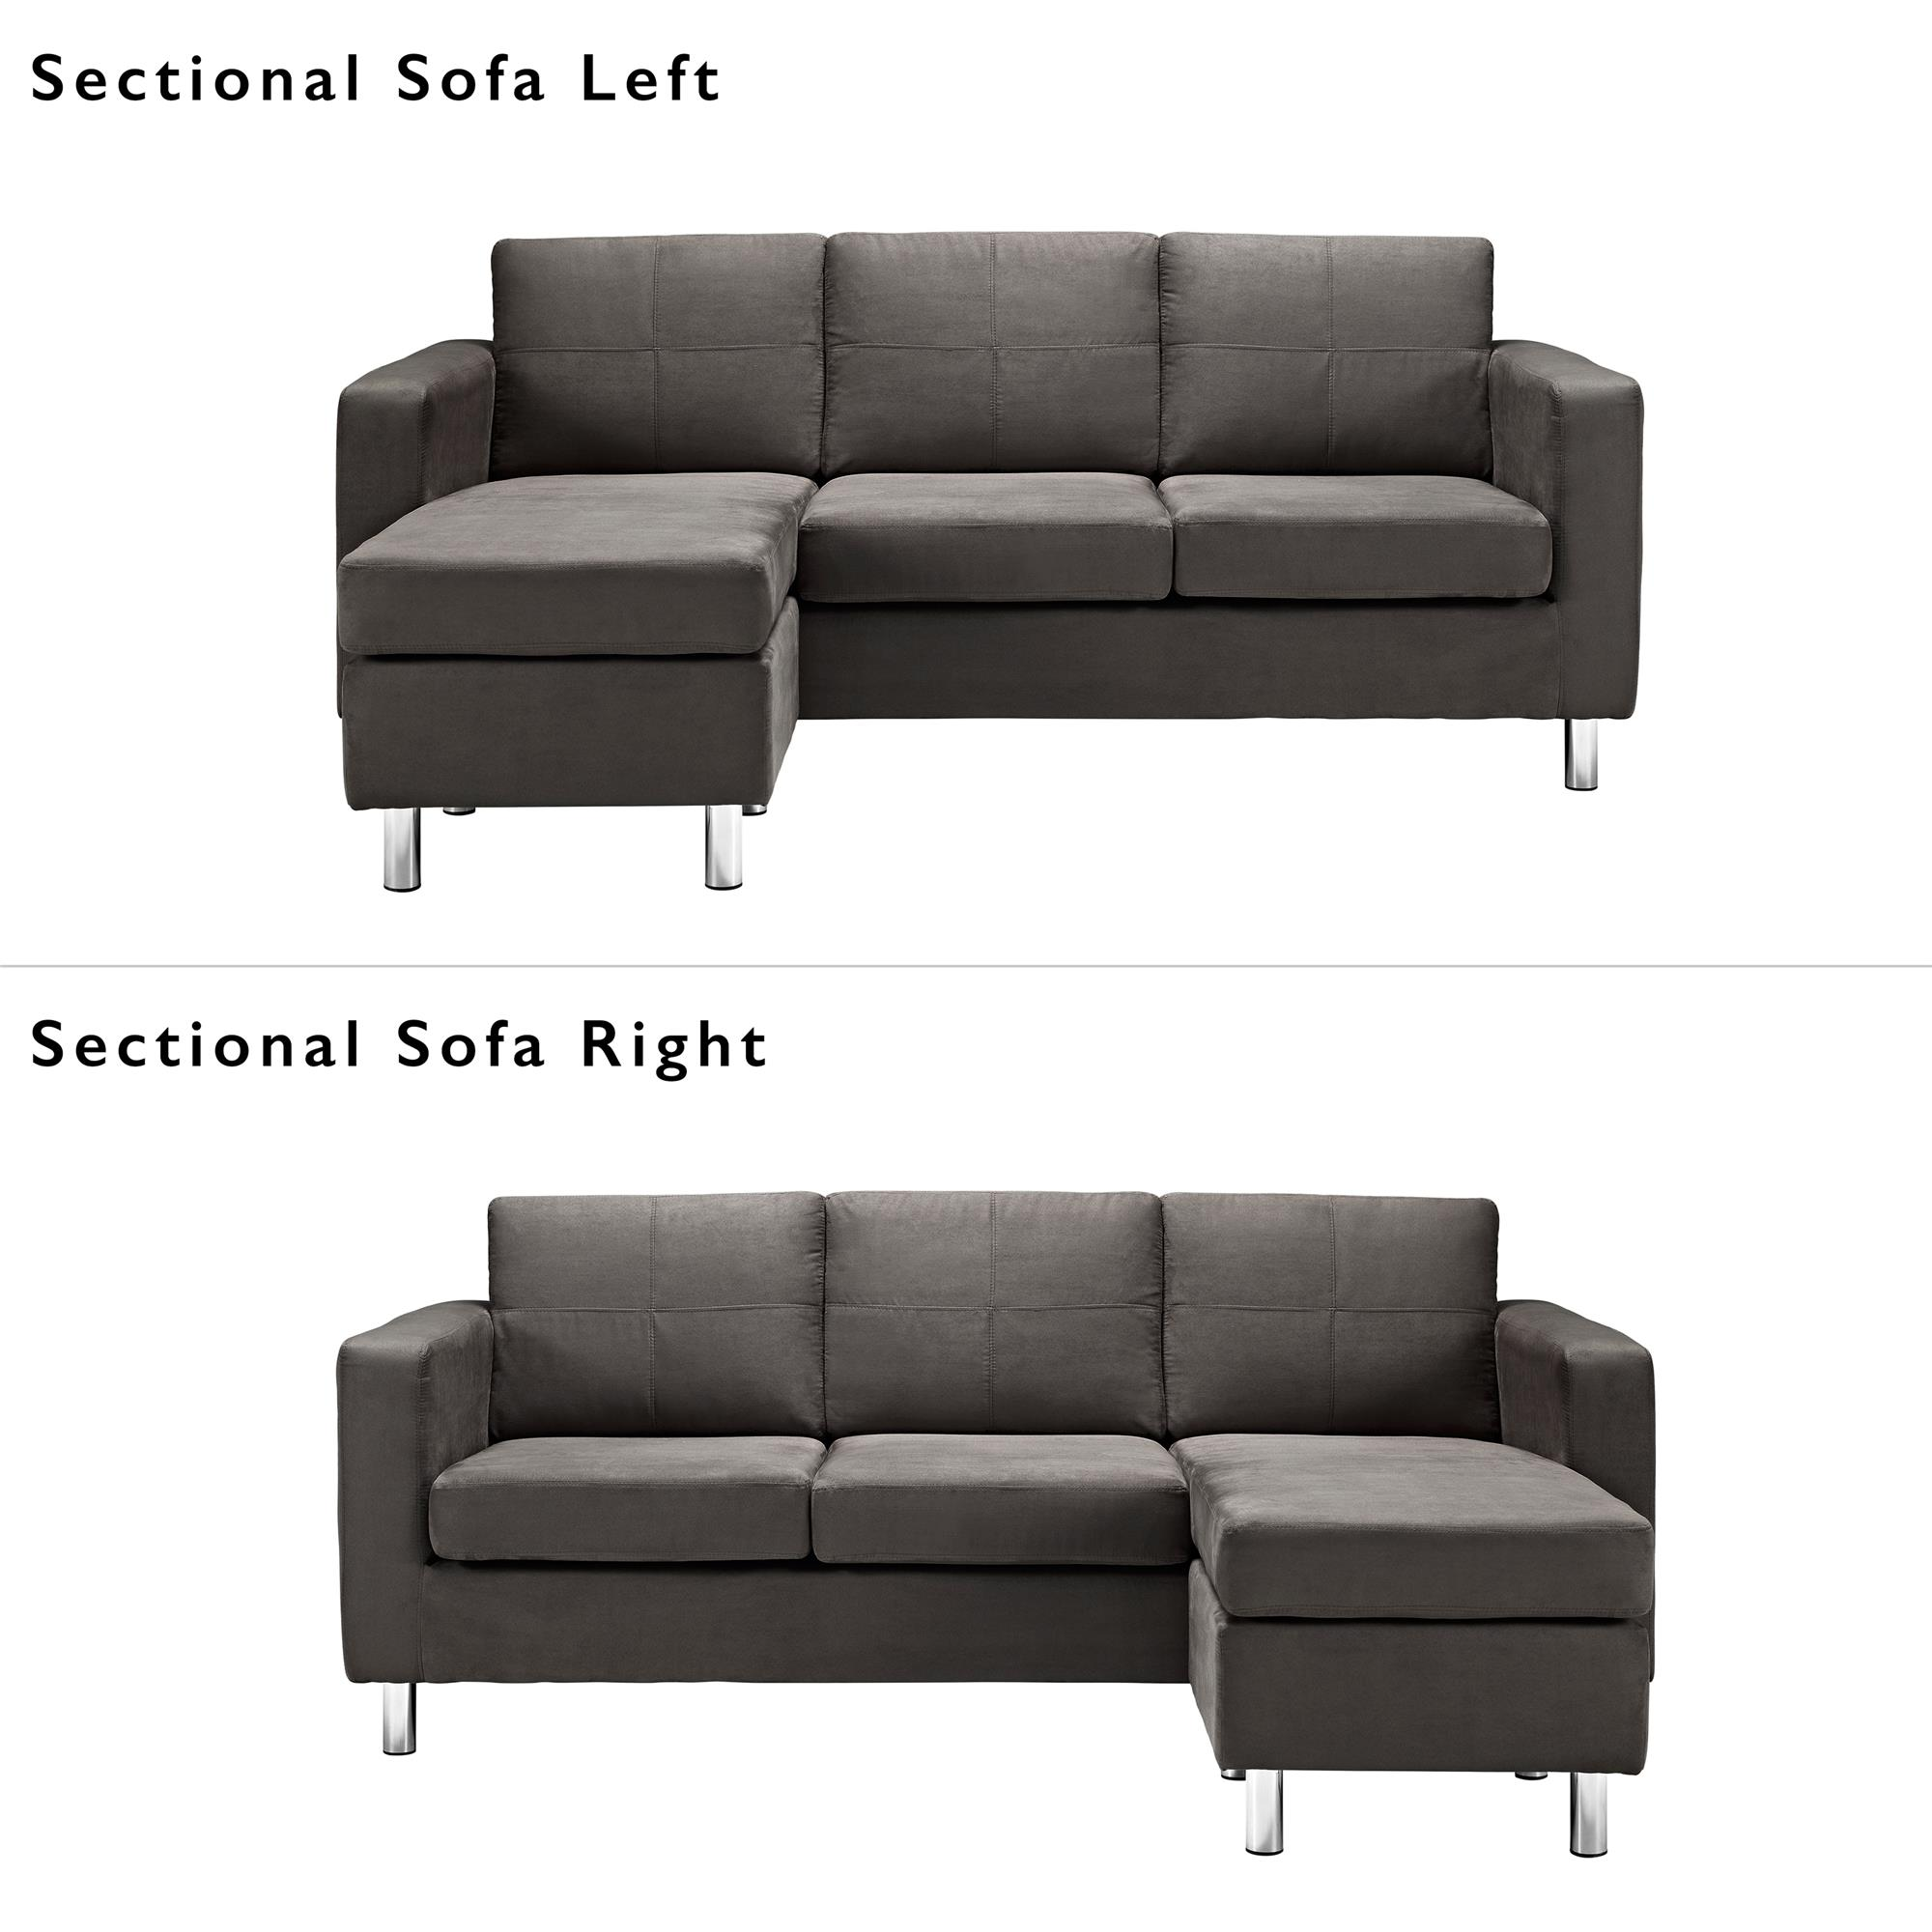 Delicieux Dorel Living Small Spaces Configurable Sectional Sofa, Multiple Colors    Walmart.com